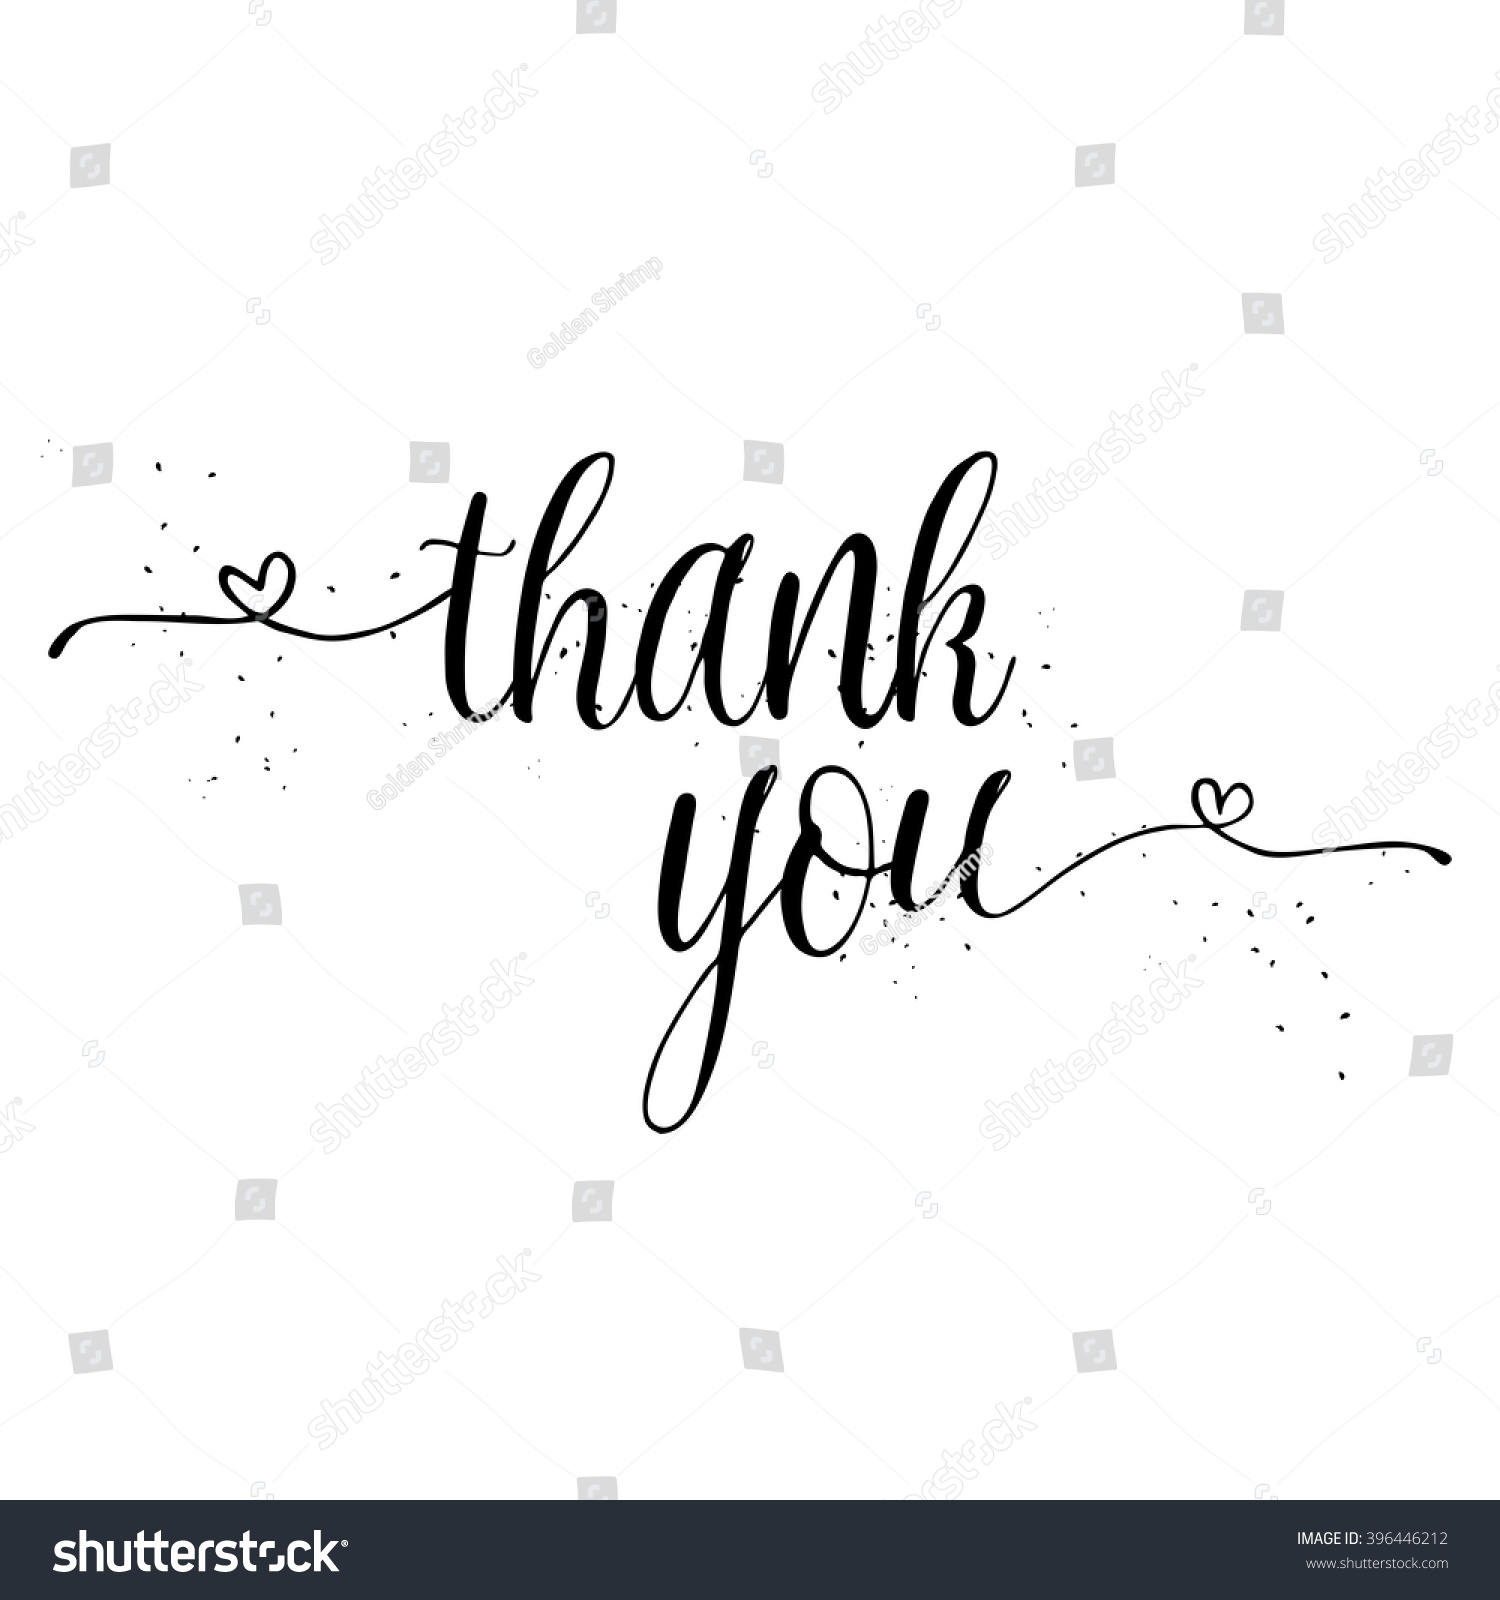 Thank you calligraphy sign brush painted stock vector Thank you in calligraphy writing